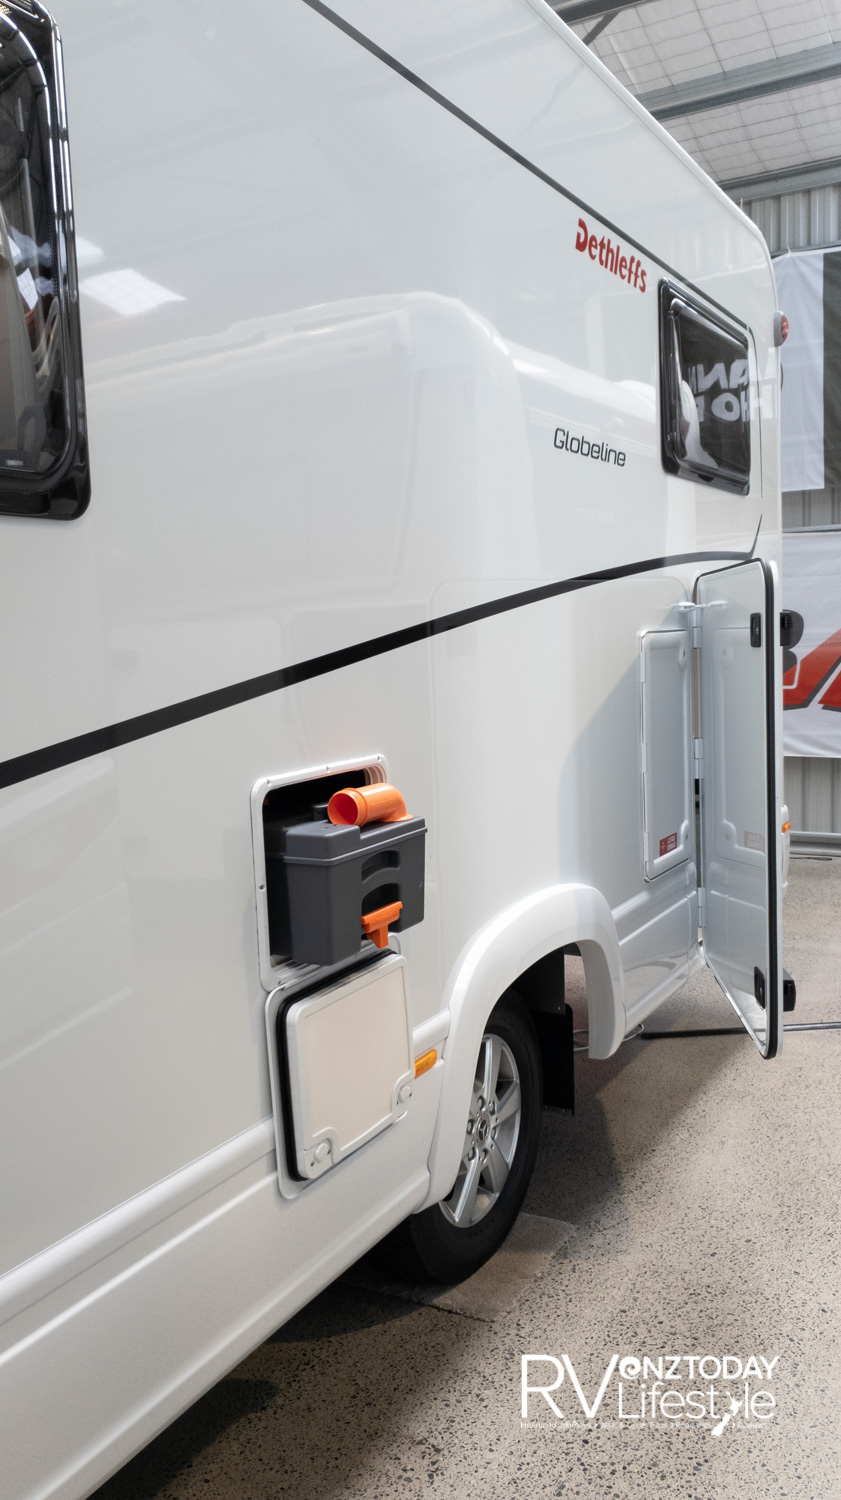 Gas and toilet service lockers on the kerb side of the vehicle